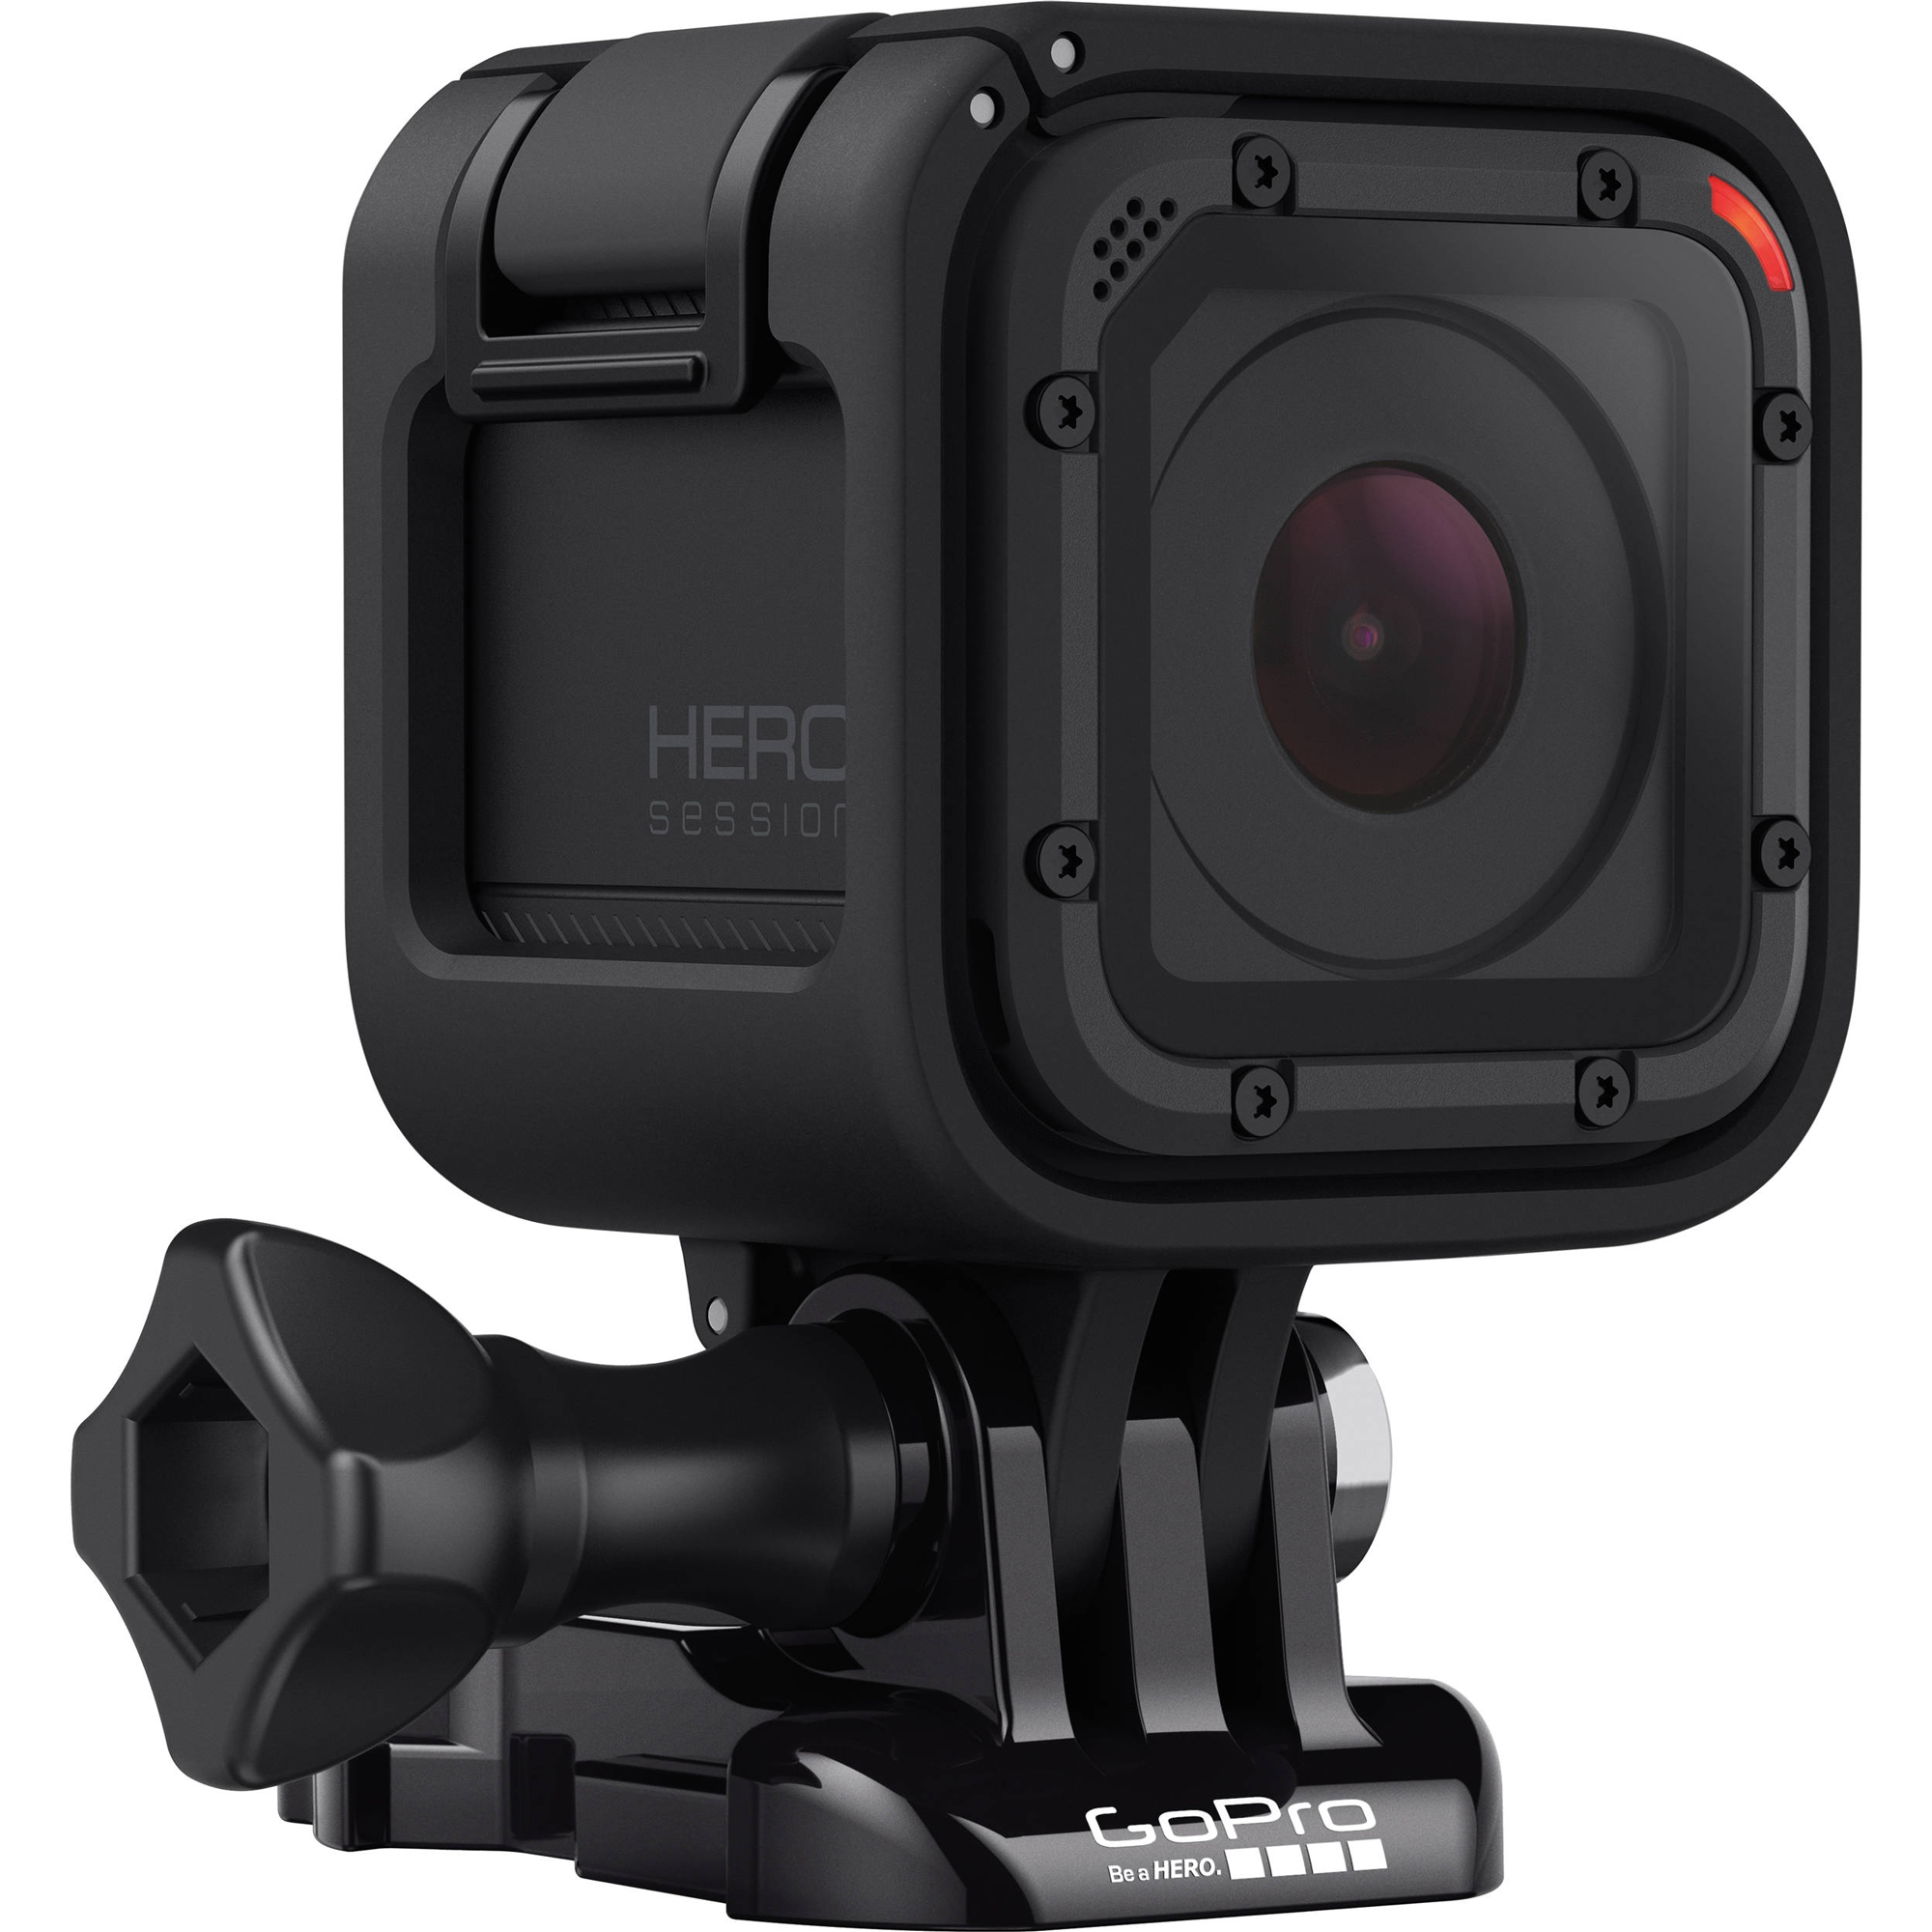 Gopro Buying Guide How To Find The Best Cameras Mounts And Suction Cup Mount Quick Release Aucmt 302 Hero Session